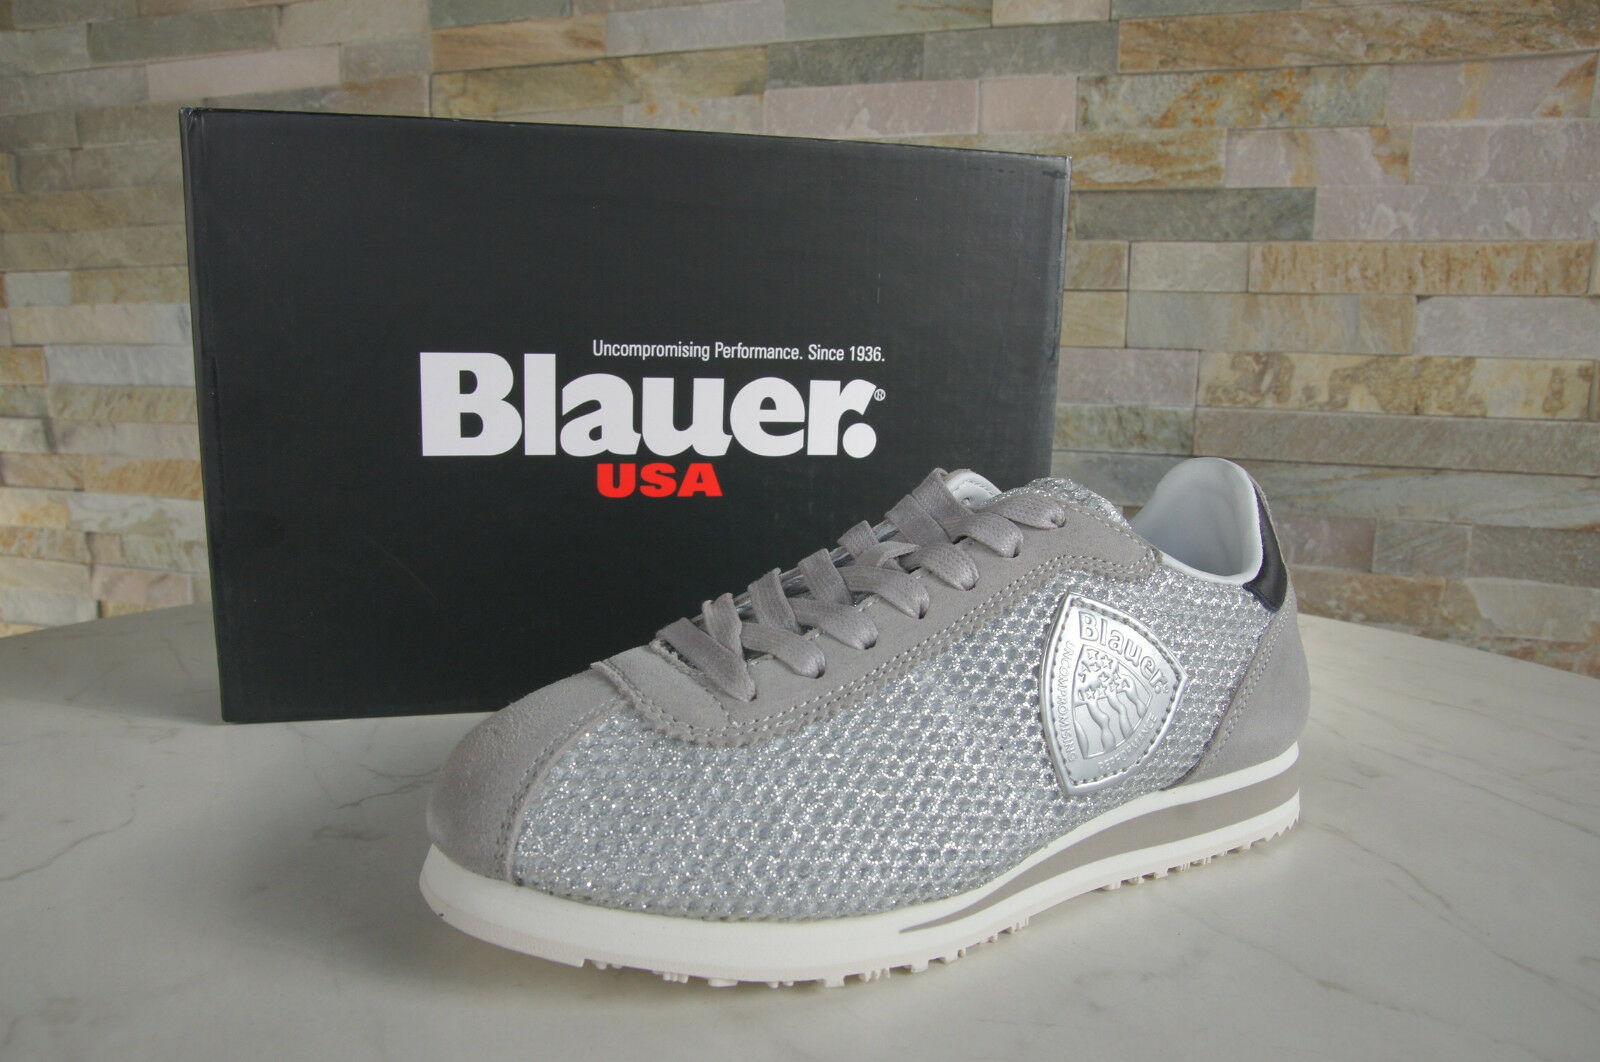 BLAUER USA Taglia 37 SNEAKERS normalissime scarpe Bowling grigie argento NUOVO UVP